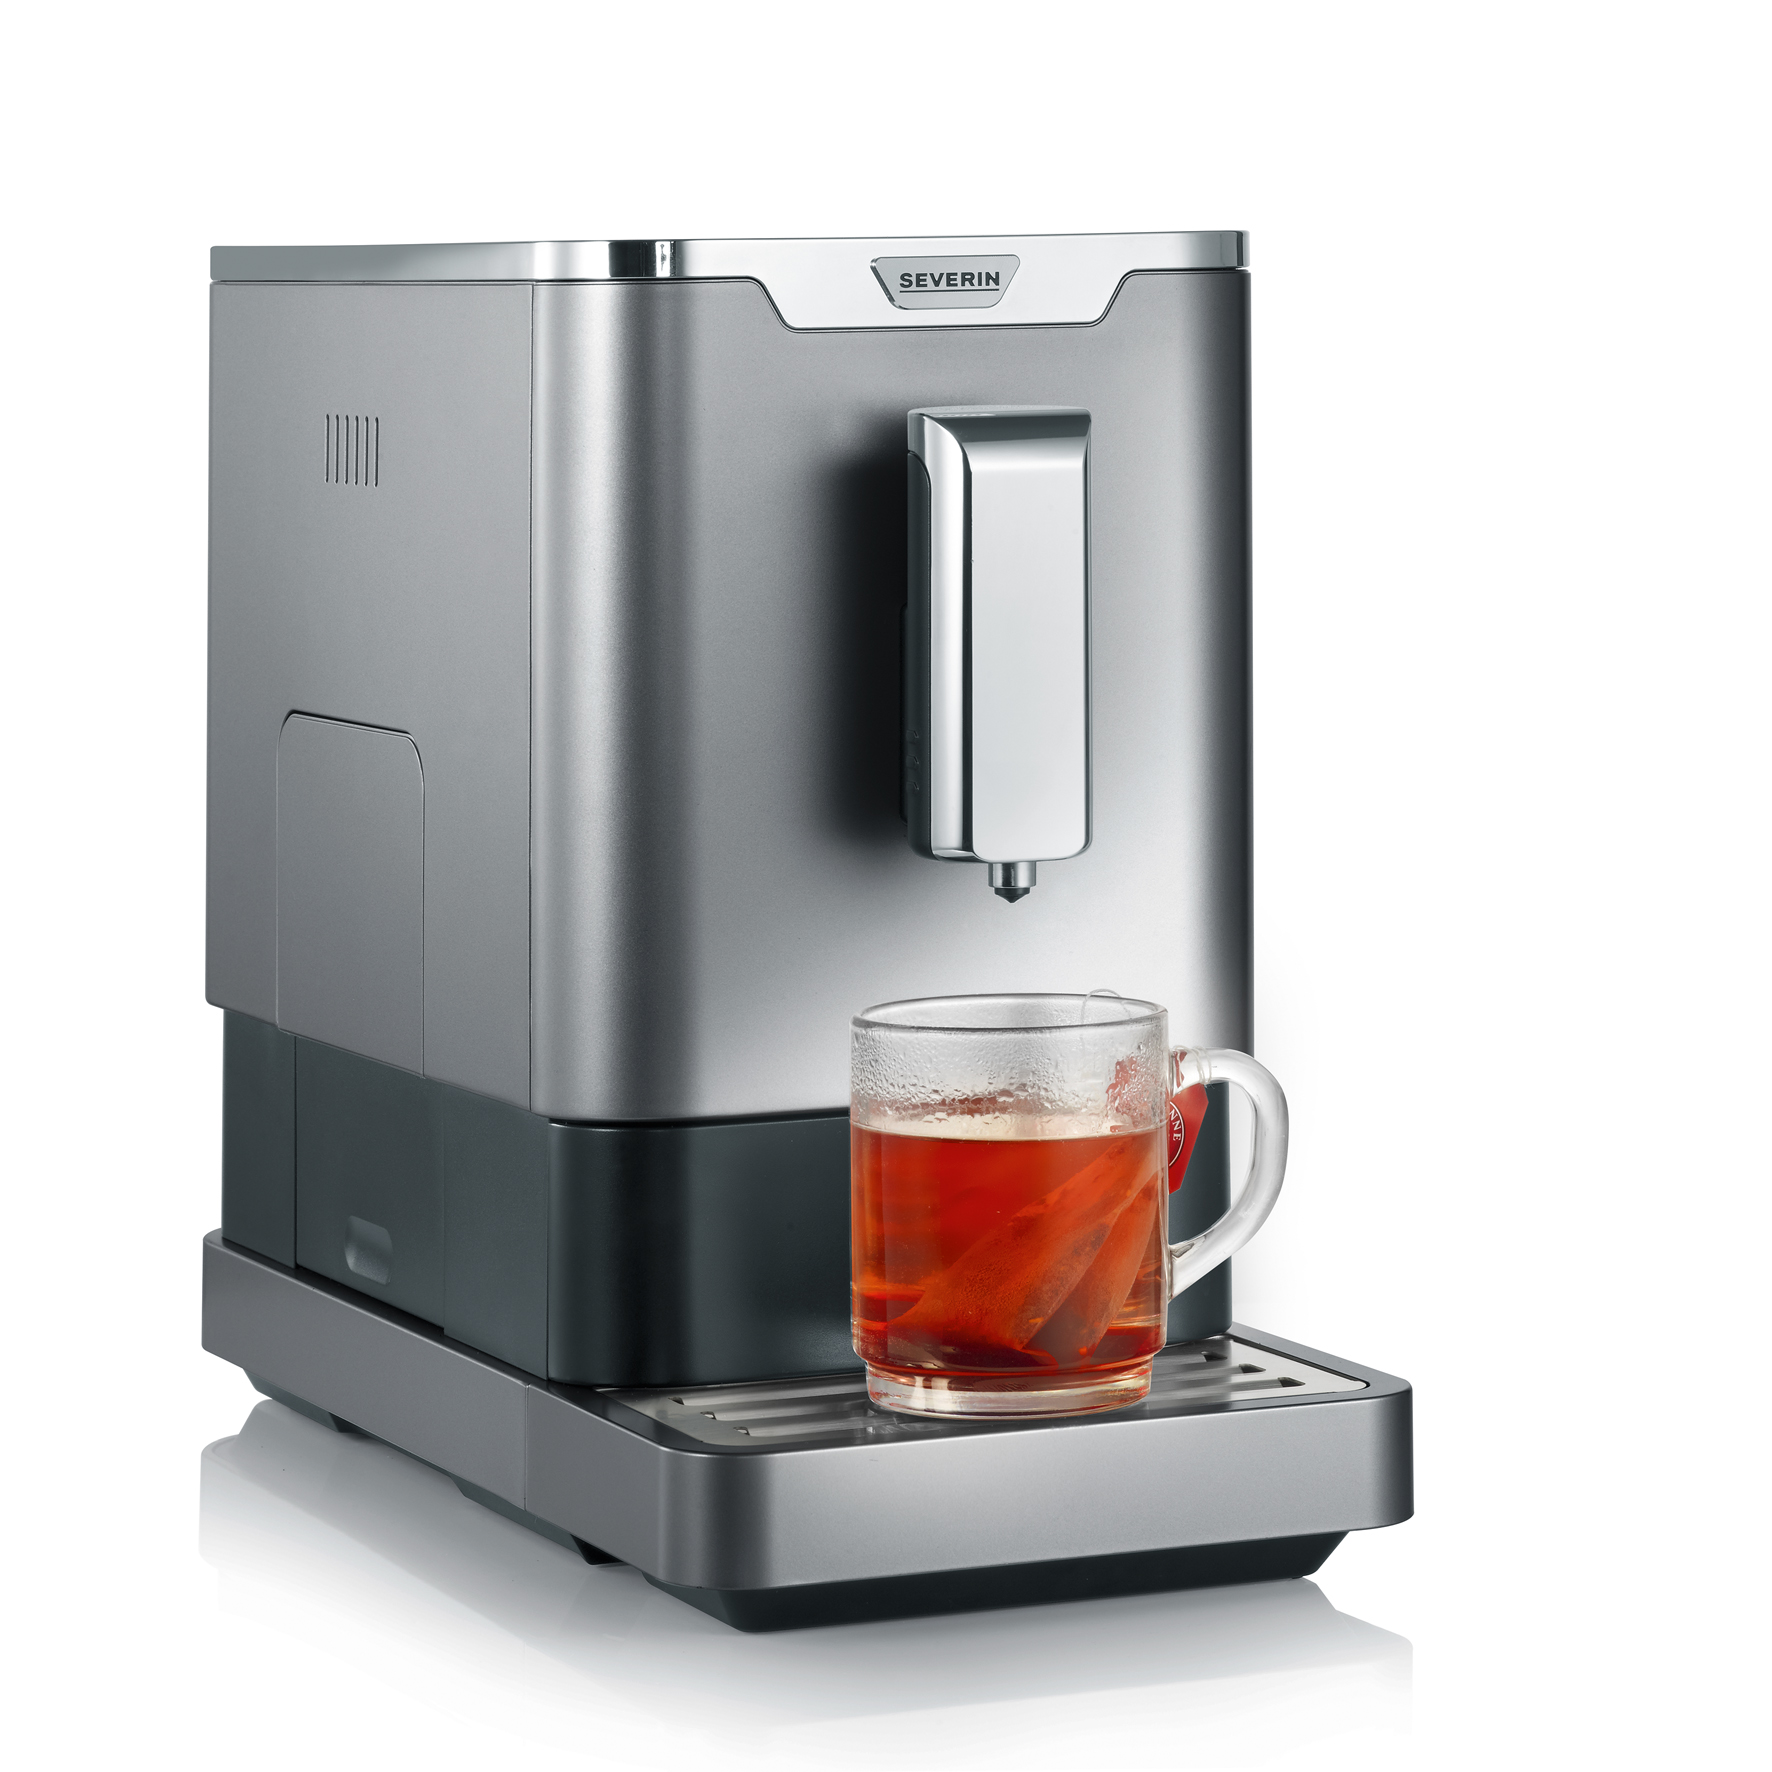 Automatic coffee machine KV 8090 - Beans to cup - Caffe Italiano